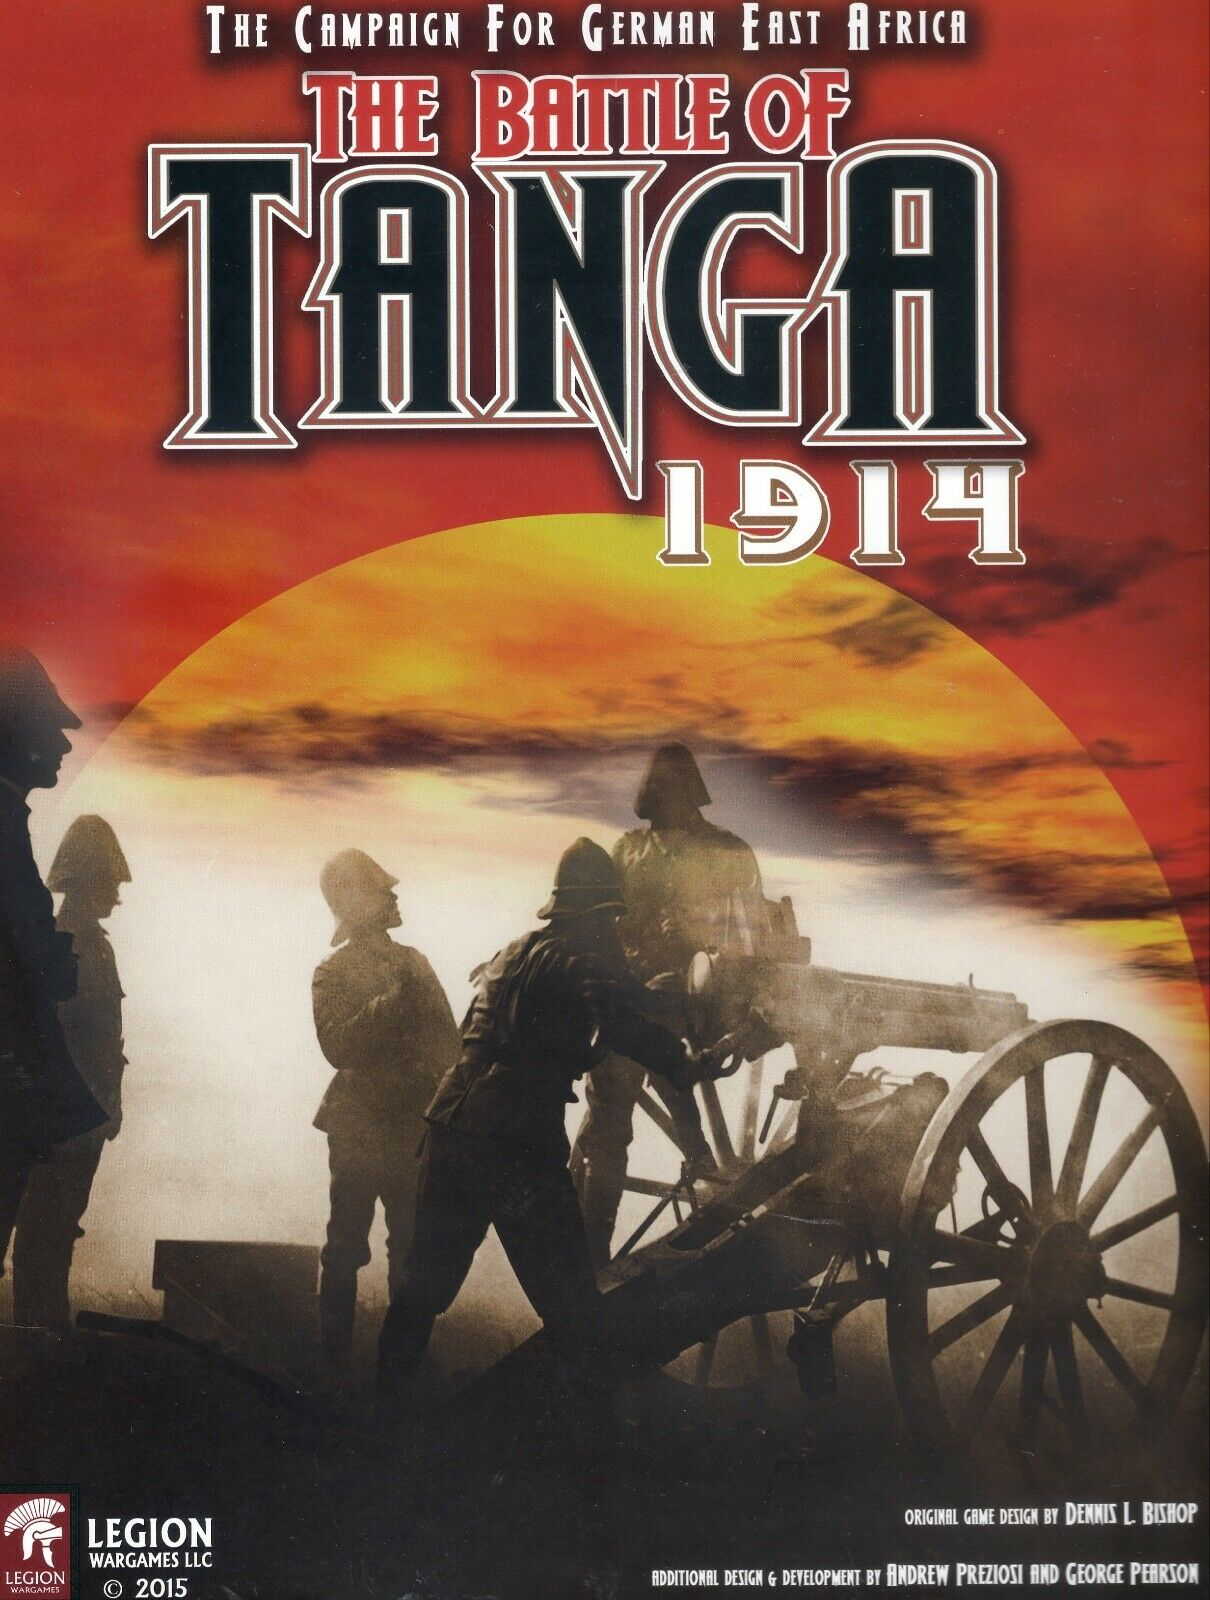 Legion Games The Battle of Tanga 1914 Campaign for German East Africa